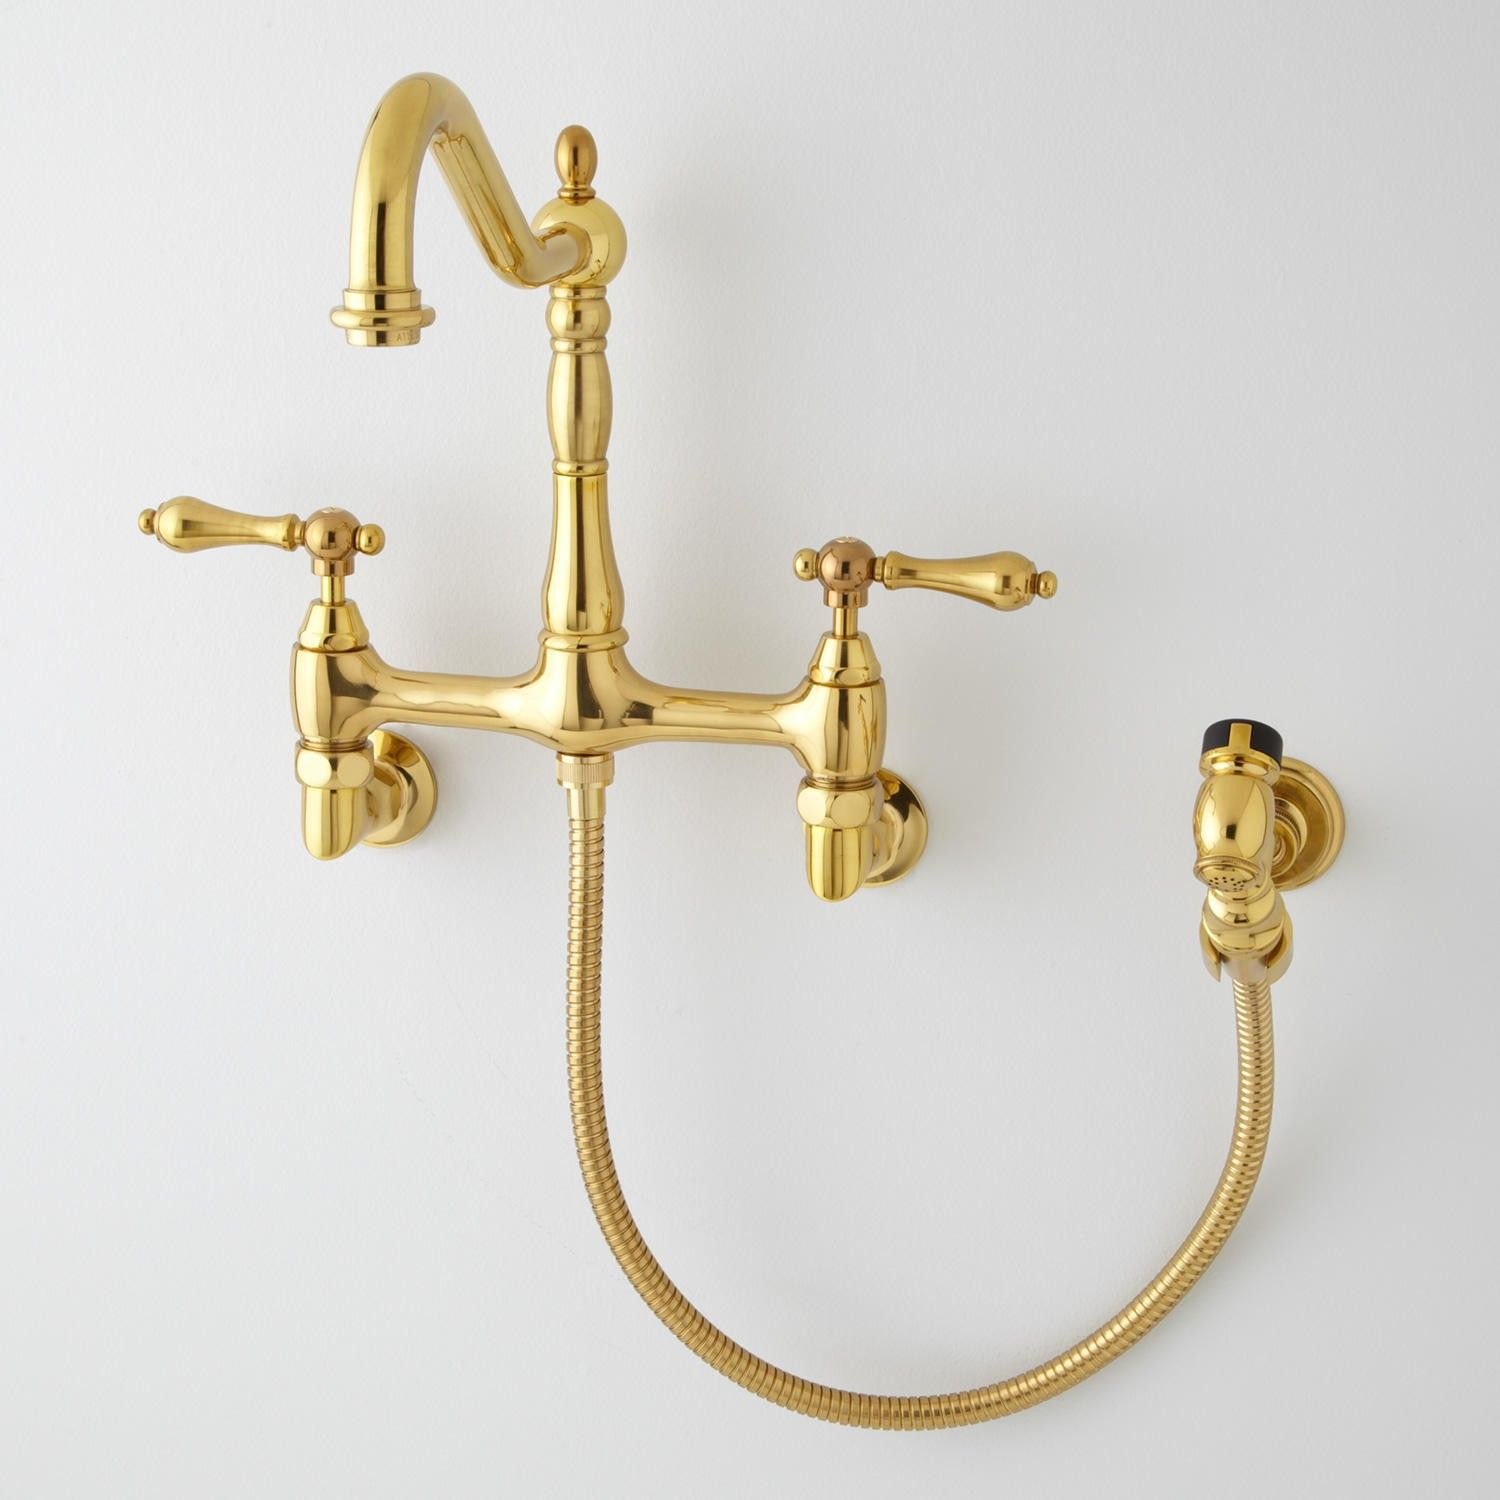 Felicity Wall Mount Kitchen Faucet With Side Spray Kitchen Wall Mount Kitchen Faucet Kitchen Faucet Faucet